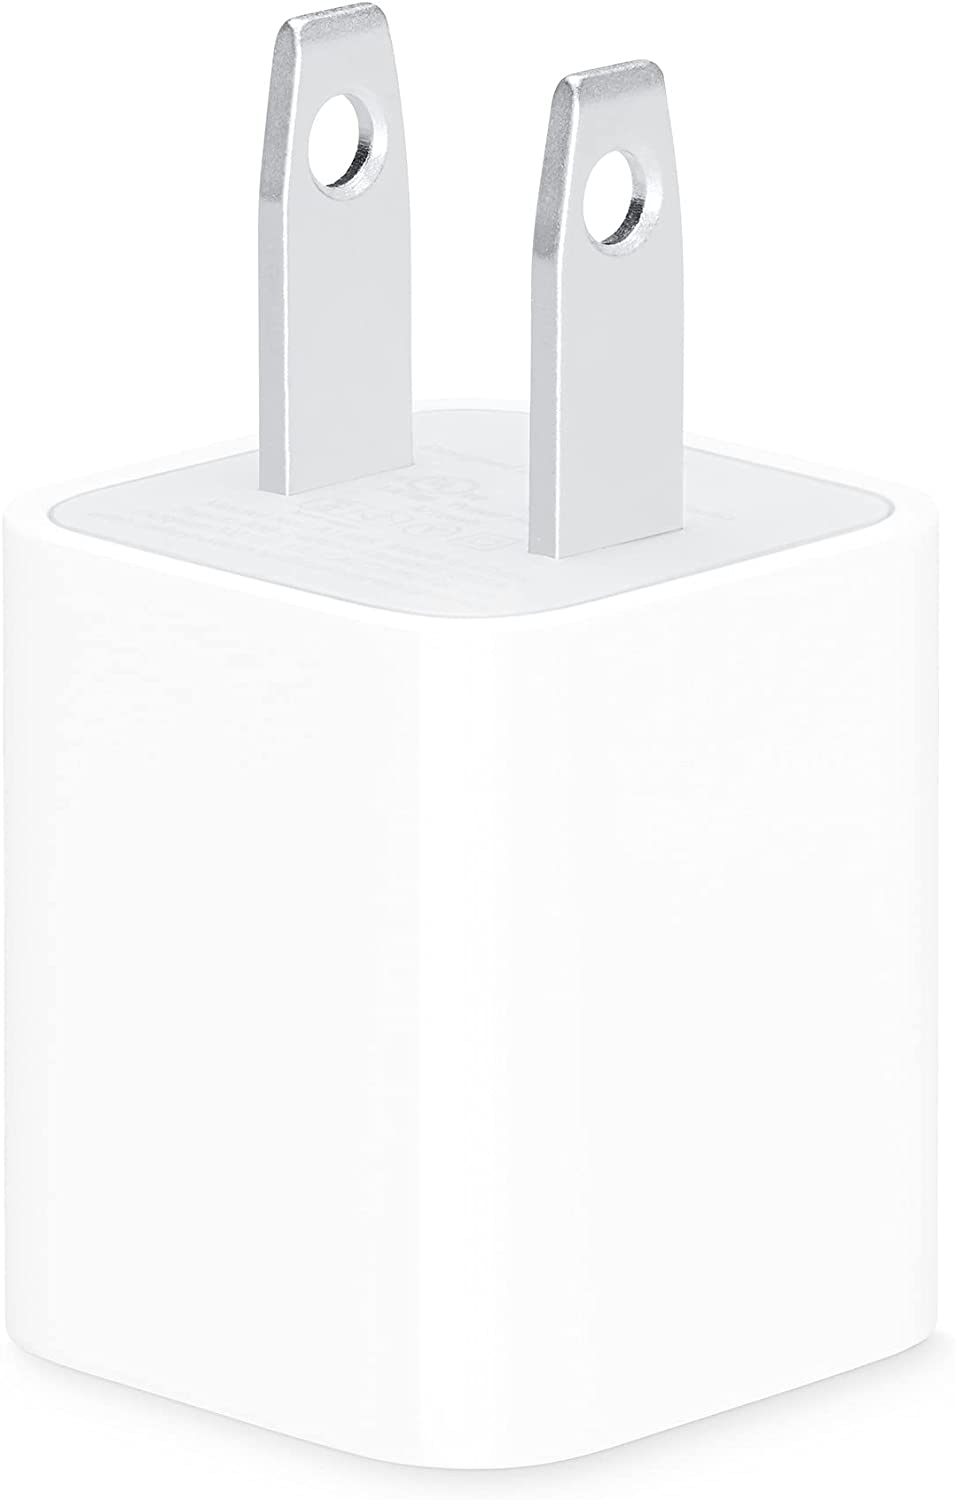 5 W USB Power Adapter Plug Charging Cube for All iPhone, iPod Touch (Apple MFi Certified)